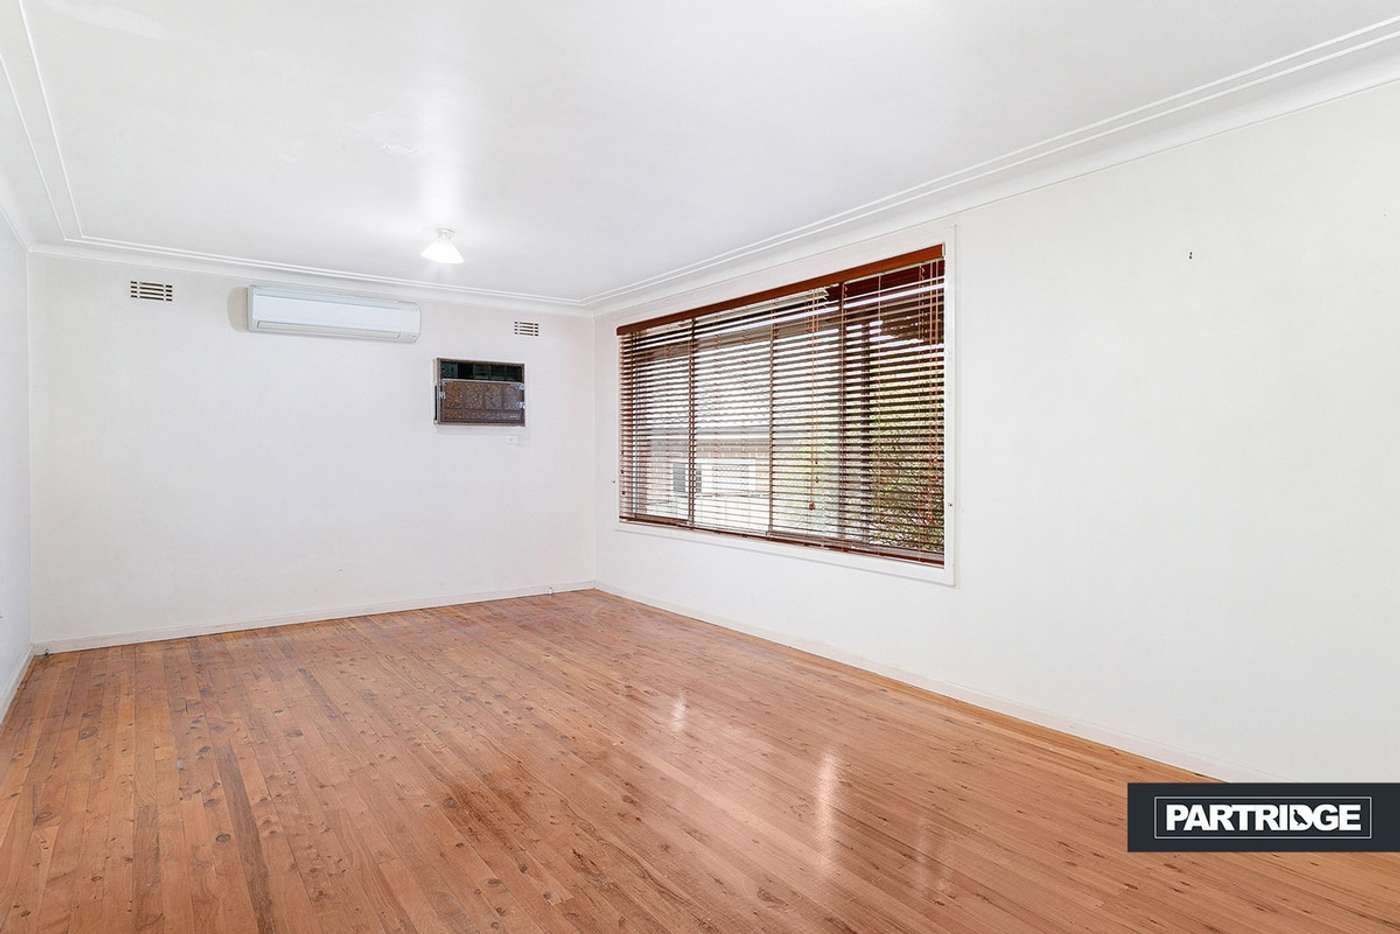 Fifth view of Homely house listing, 6 Elm Place, Constitution Hill NSW 2145